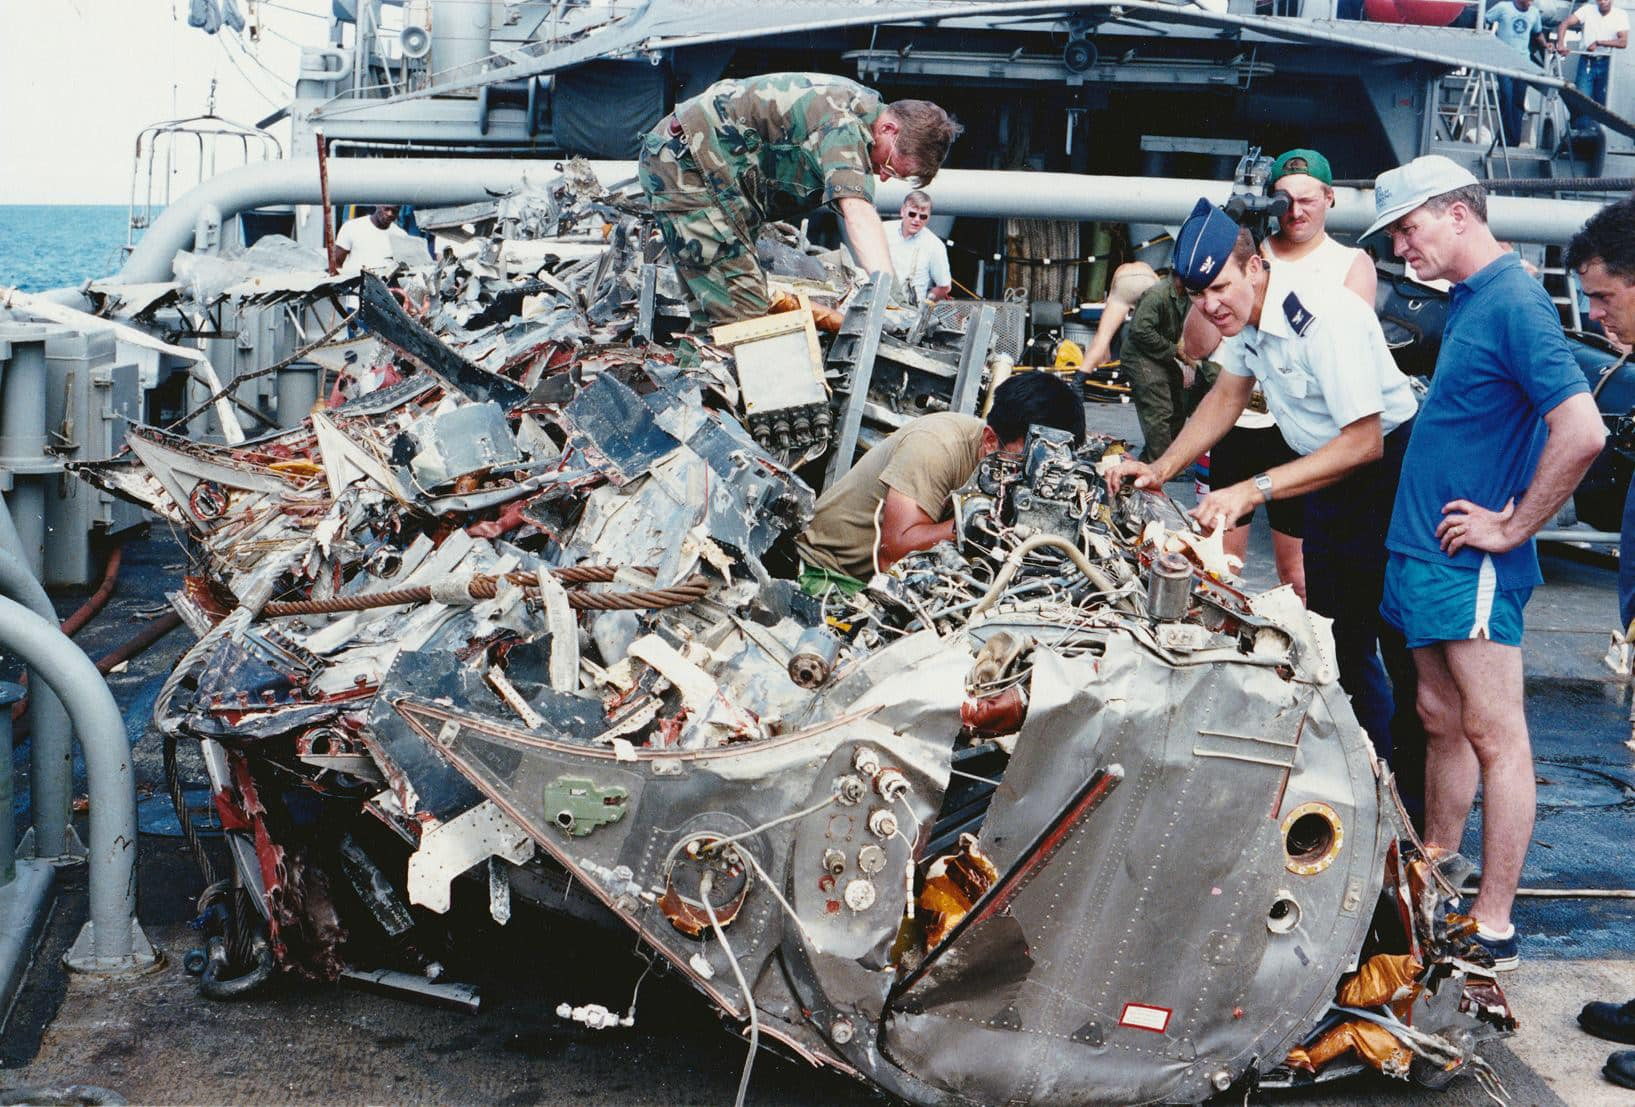 Ichiban Wreckage: The story of how SR-71 Blackbird #61-17974 was recovered and buried at sea